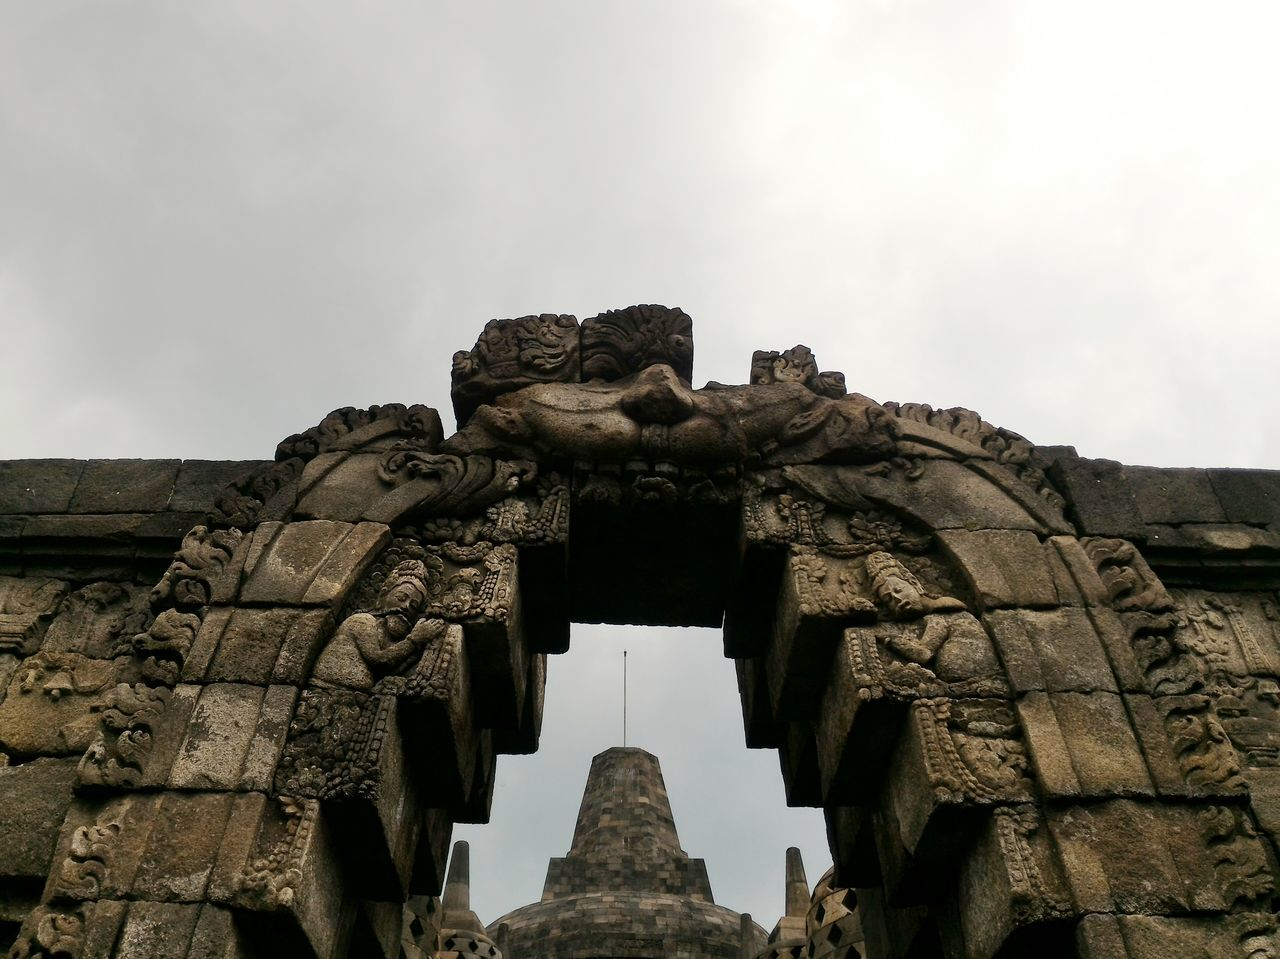 The Big Stupa Low Angle View Stupa Temple Borobudur Temple, Indonesia Historical Building Ancient Heritage Heritage Site Relief Stone Material Sky Cloud - Sky Gate Entrance Gate Travel Travel Destinations EyeEmNewHere Flying High